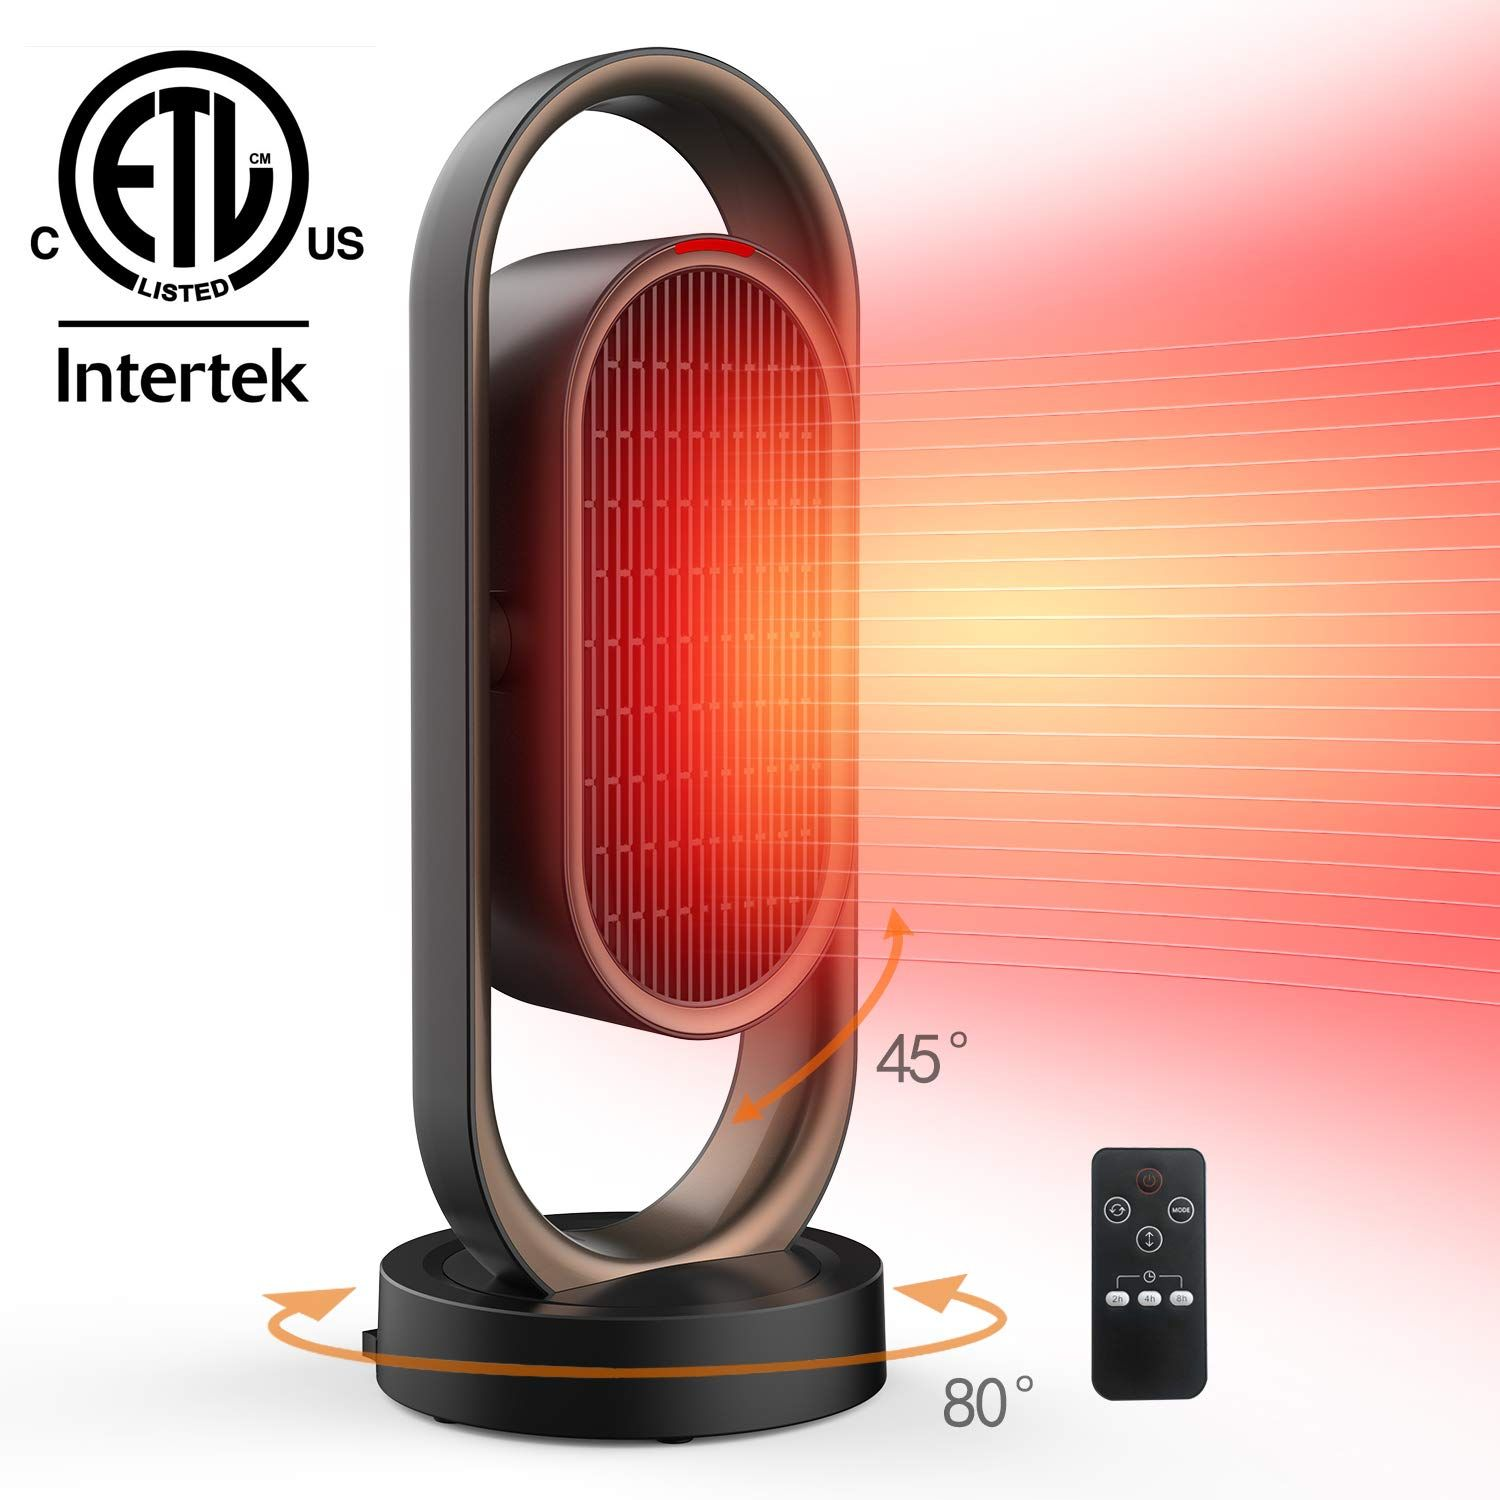 Space Heater For Home Office Ceramic Quiet Tower Heater 1 Seconds Heat Up Portable Small Personal In 2020 Space Heater Tower Heater Heater Fan